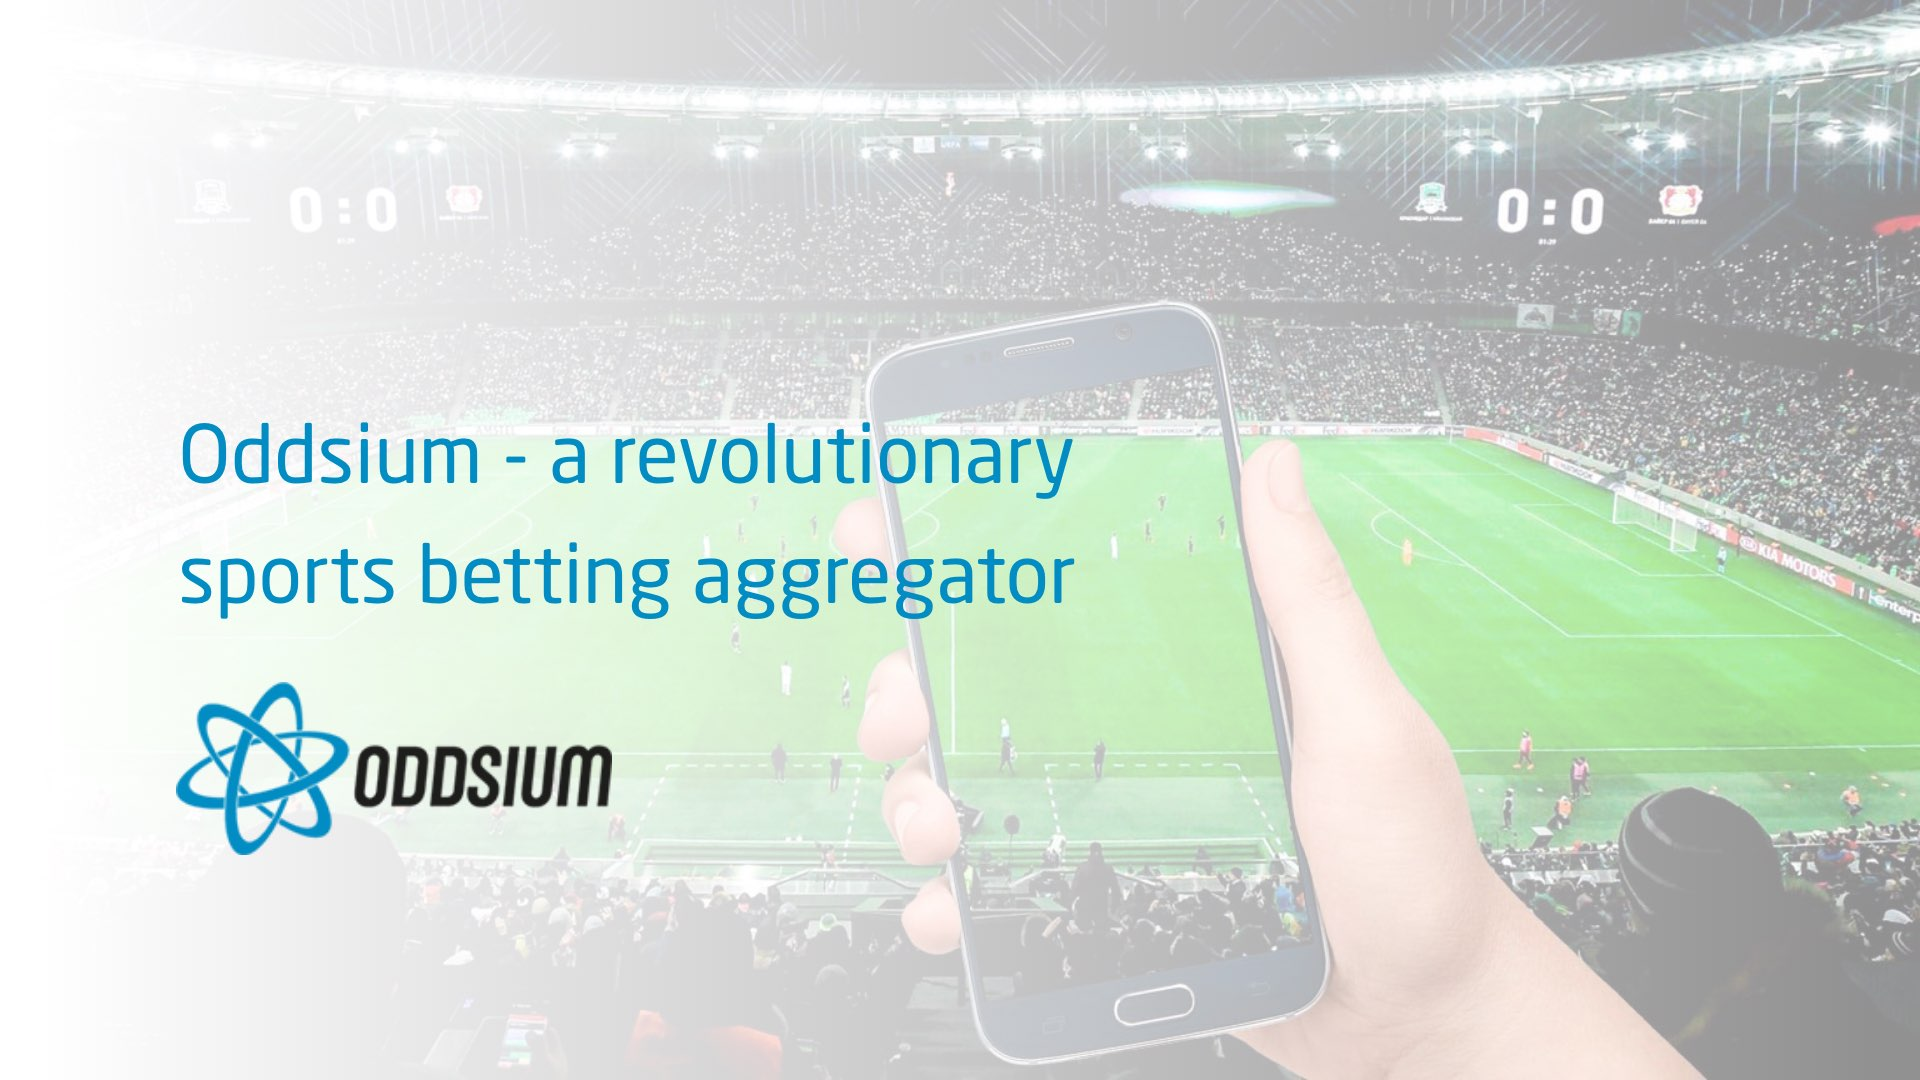 Oddsium - a revolutionary sports betting aggregator